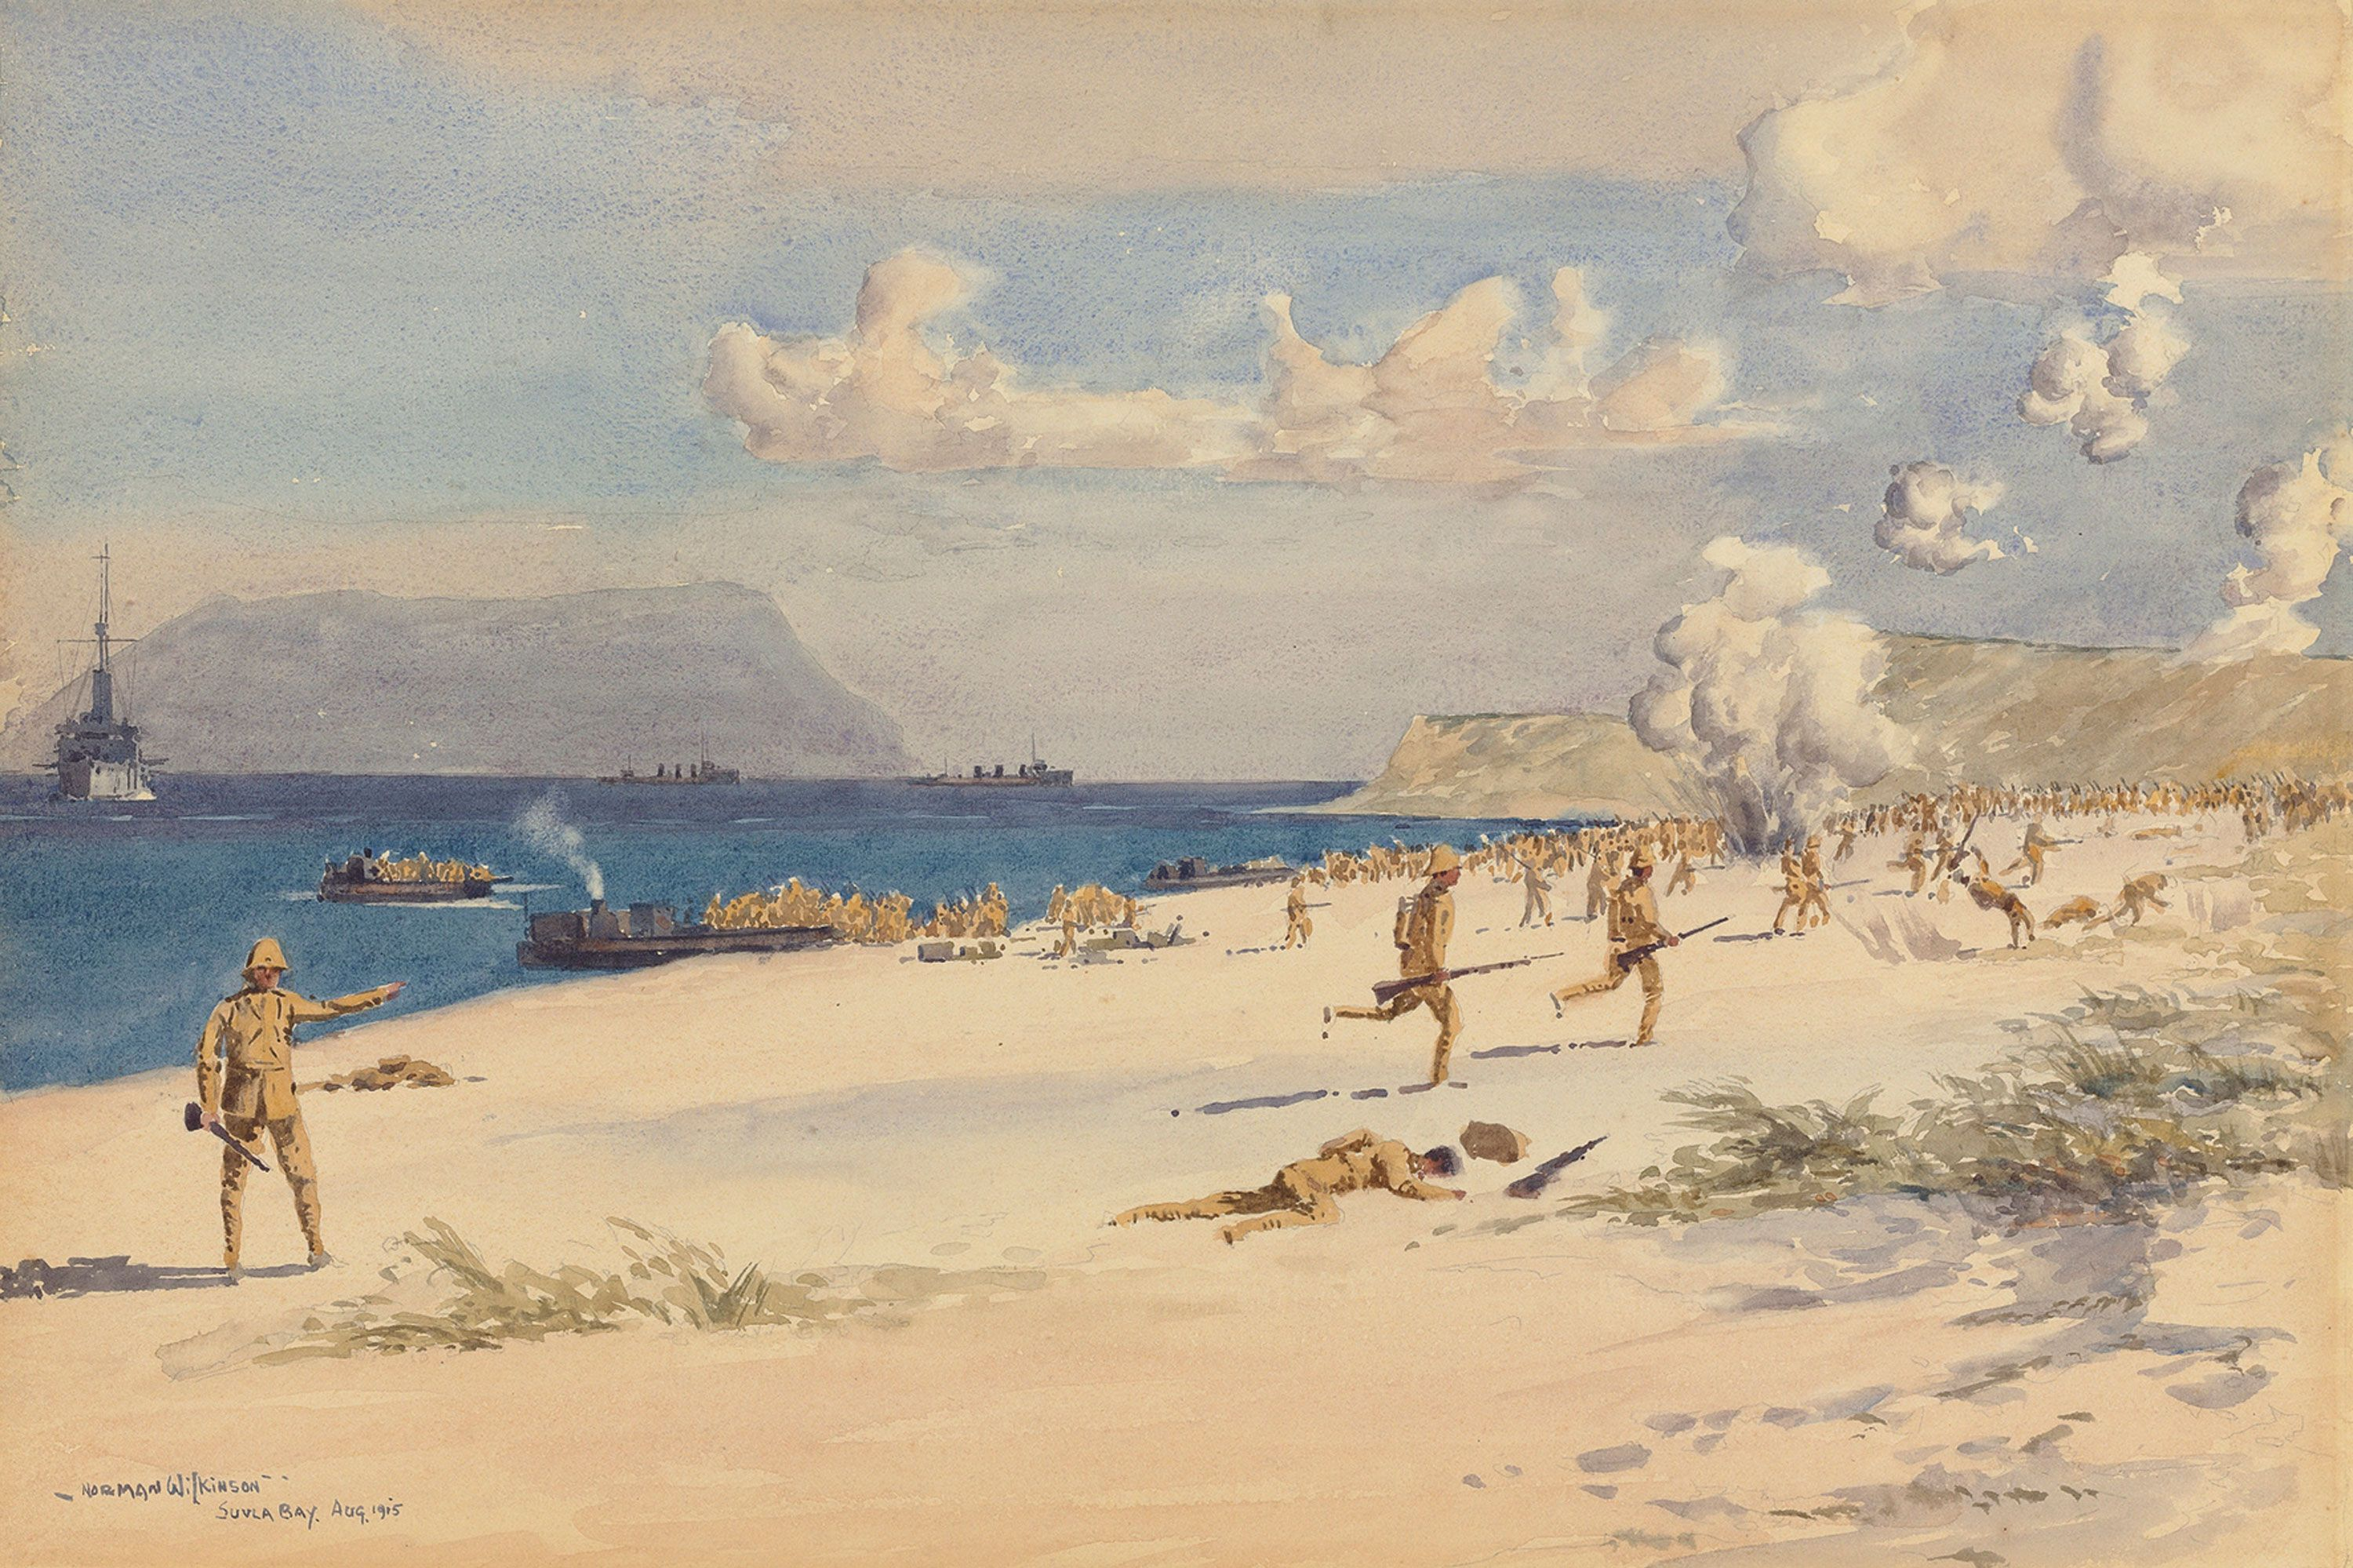 'Troops landing at Suvla Bay, Gallipoli, August 1915', Norman Wilkinson CBE